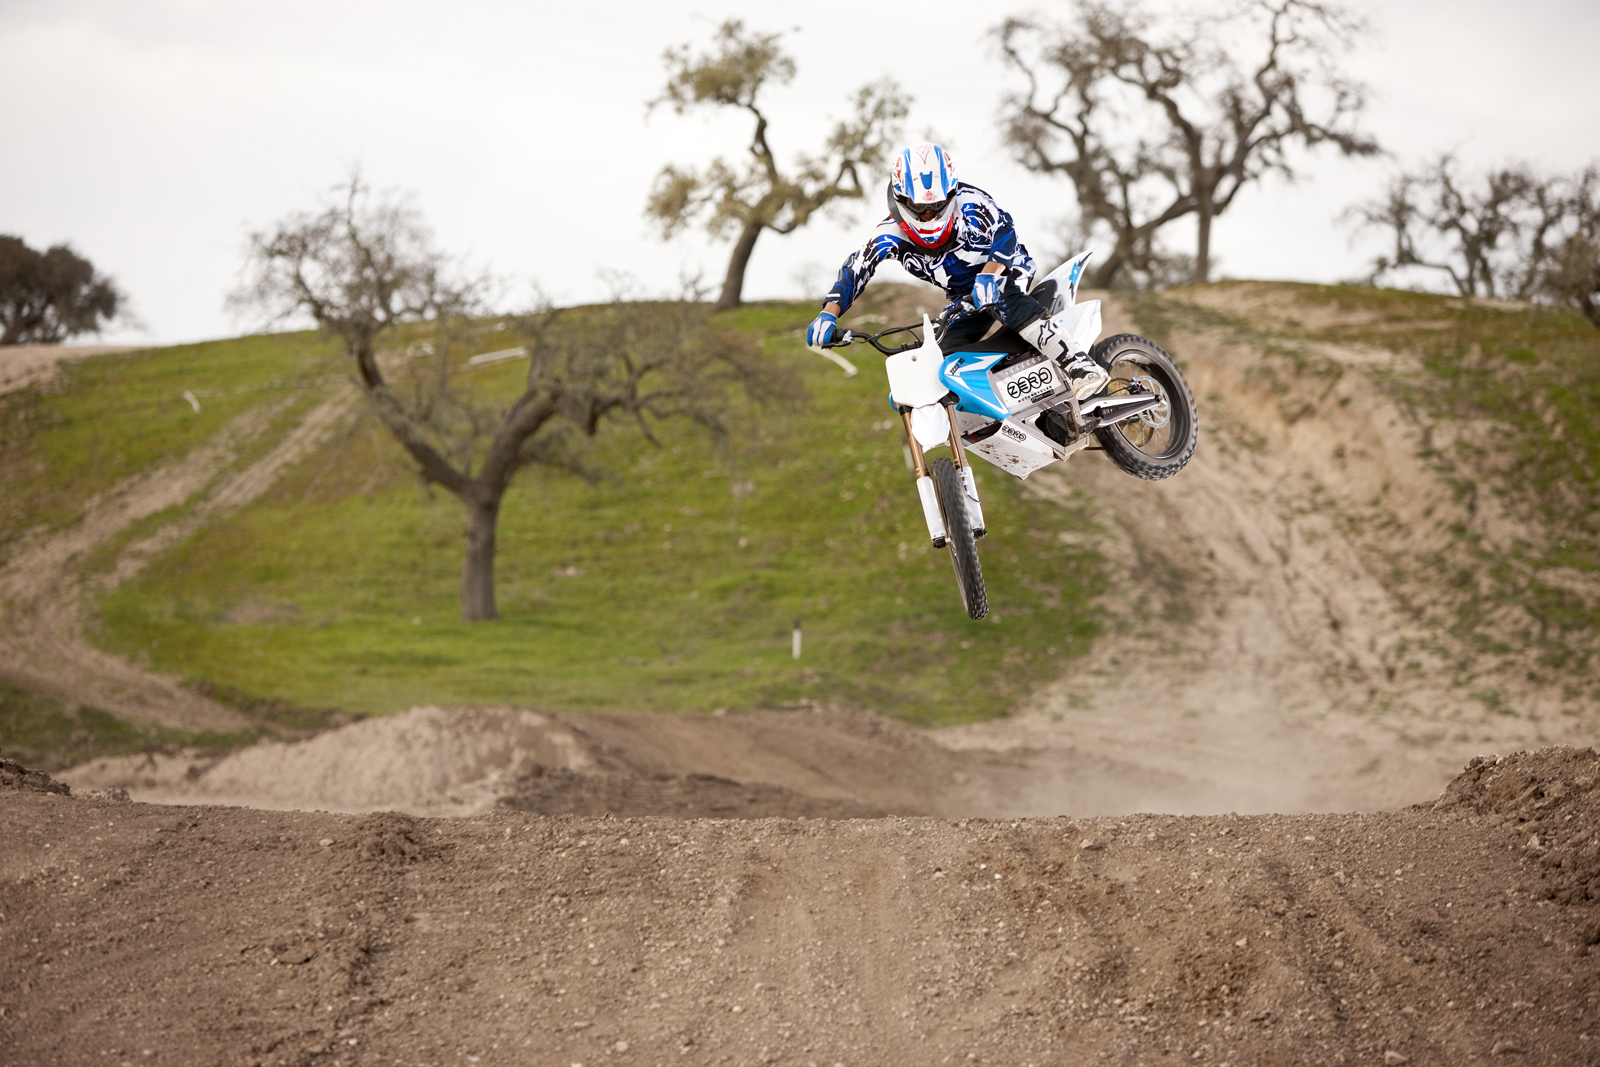 '.2010 Zero MX Electric Motorcycle: Zaca Station - Blue Whip over Double.'